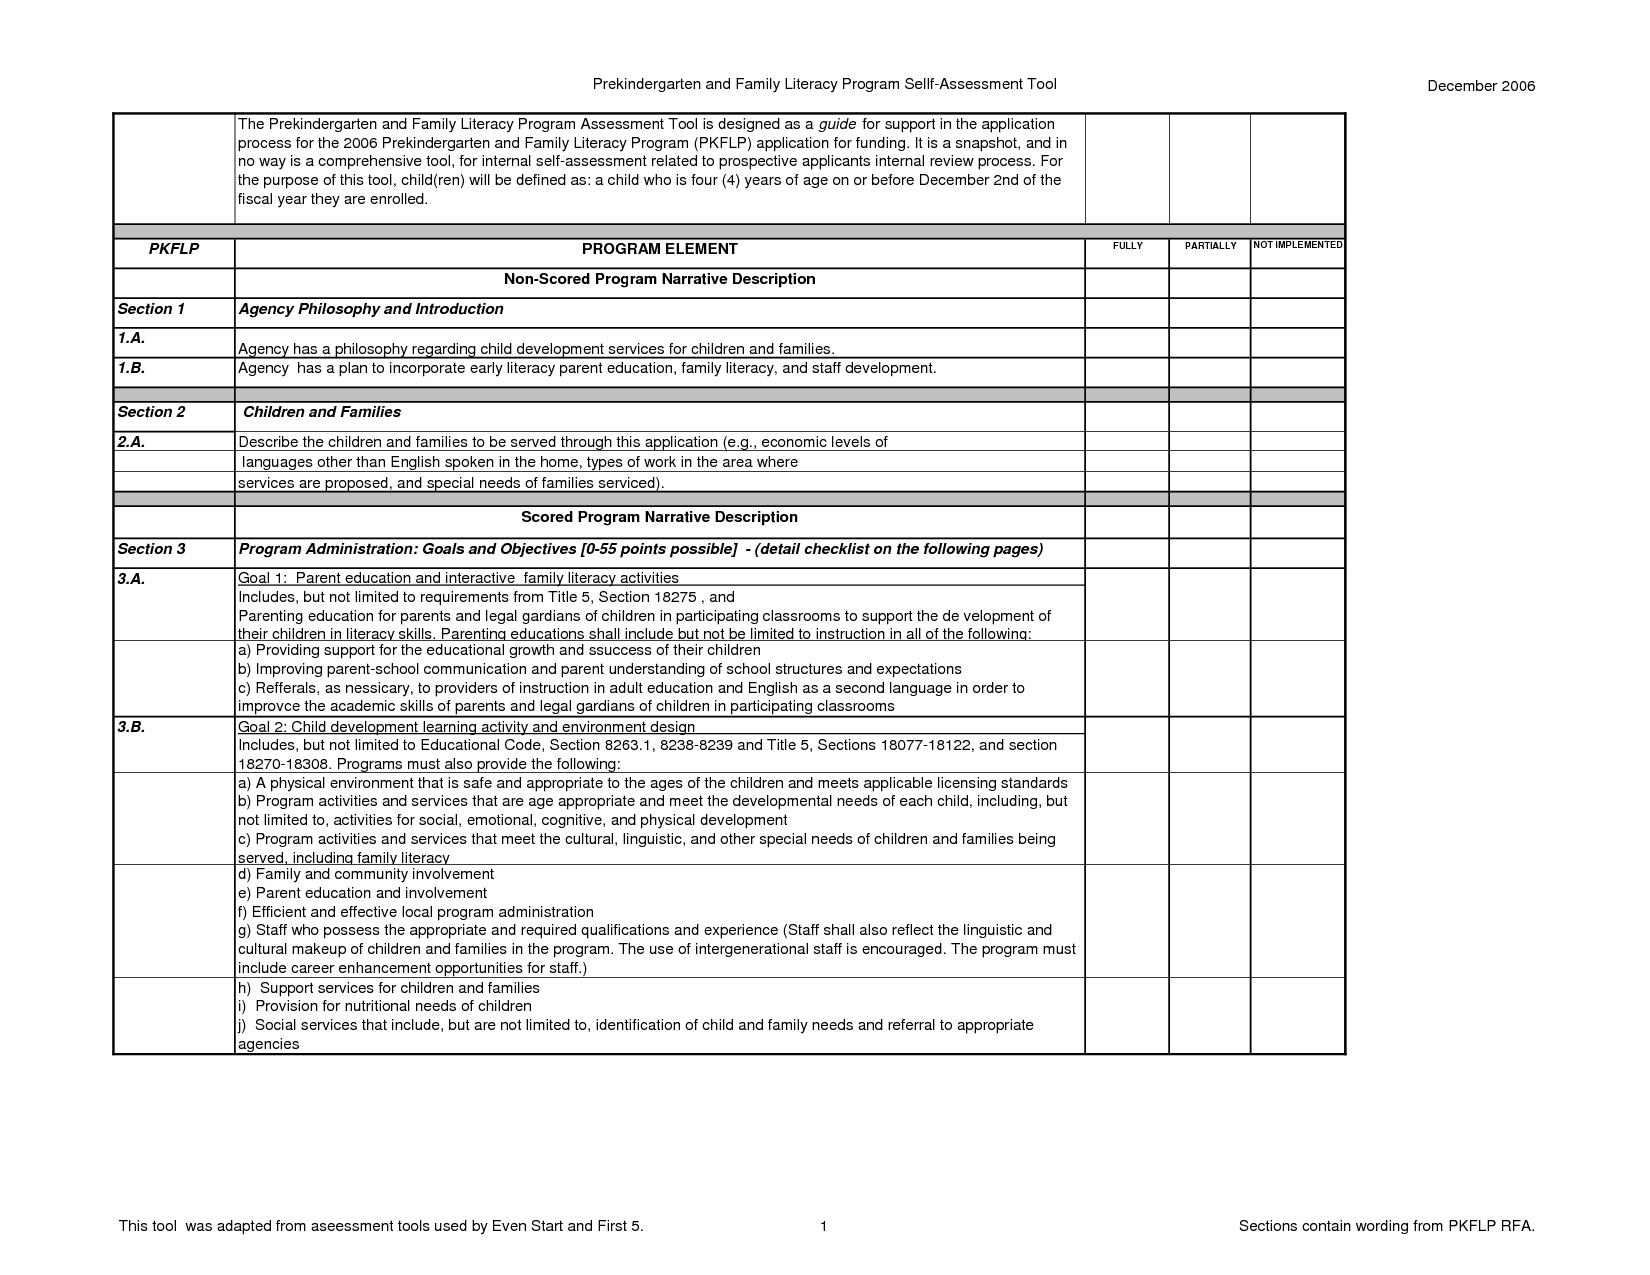 Anger Management Skills (Worksheet) | Therapist Aid